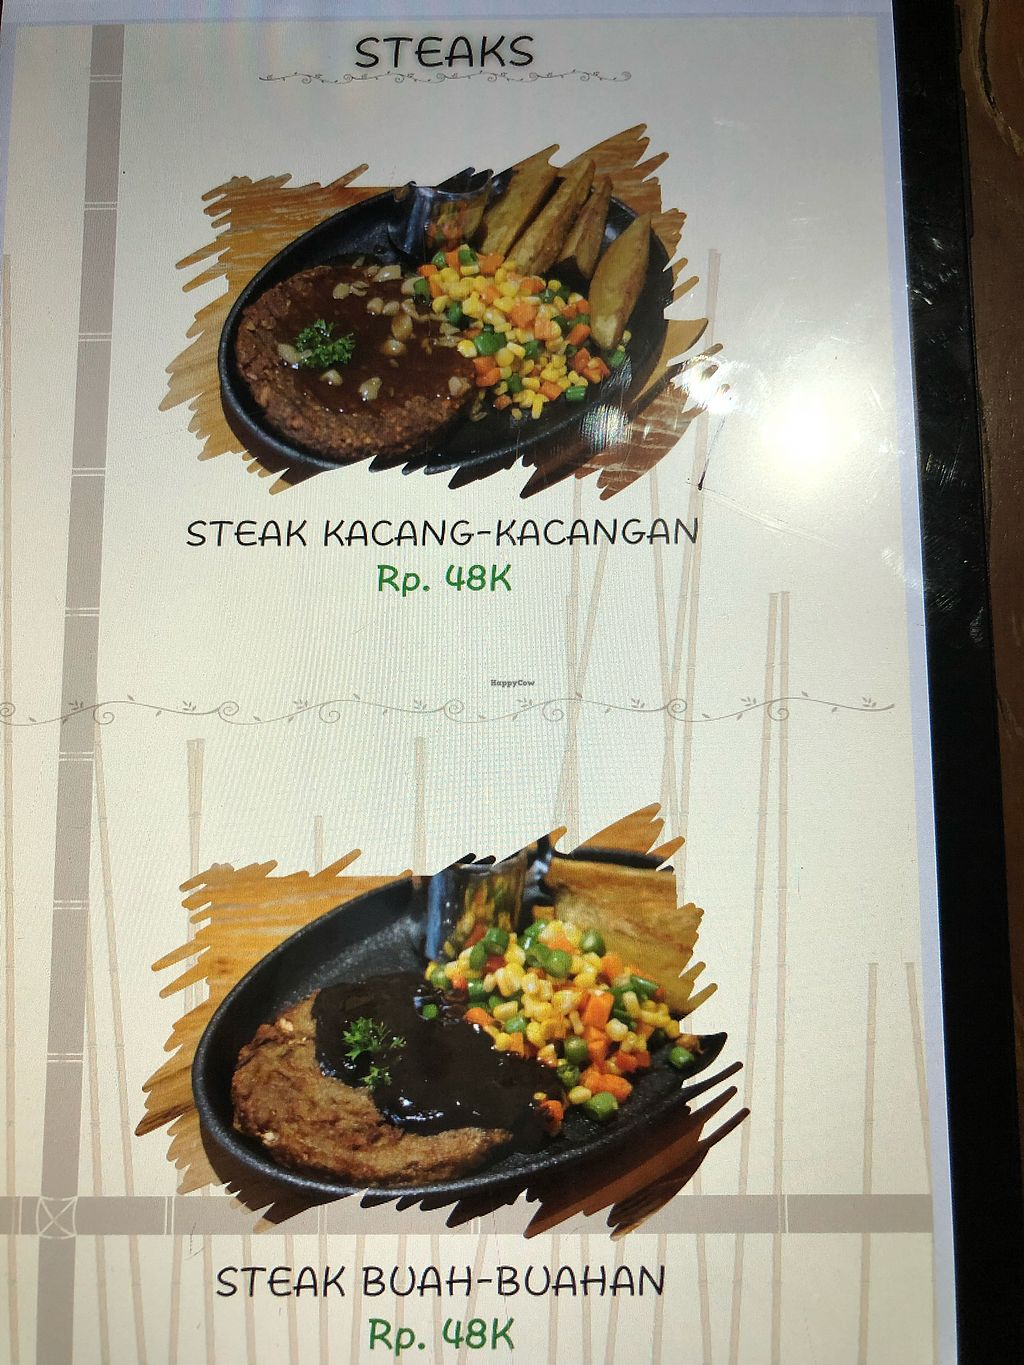 """Photo of Mai3 Cafegan  by <a href=""""/members/profile/Dai"""">Dai</a> <br/>Menu 2018/02 <br/> February 12, 2018  - <a href='/contact/abuse/image/81251/358373'>Report</a>"""